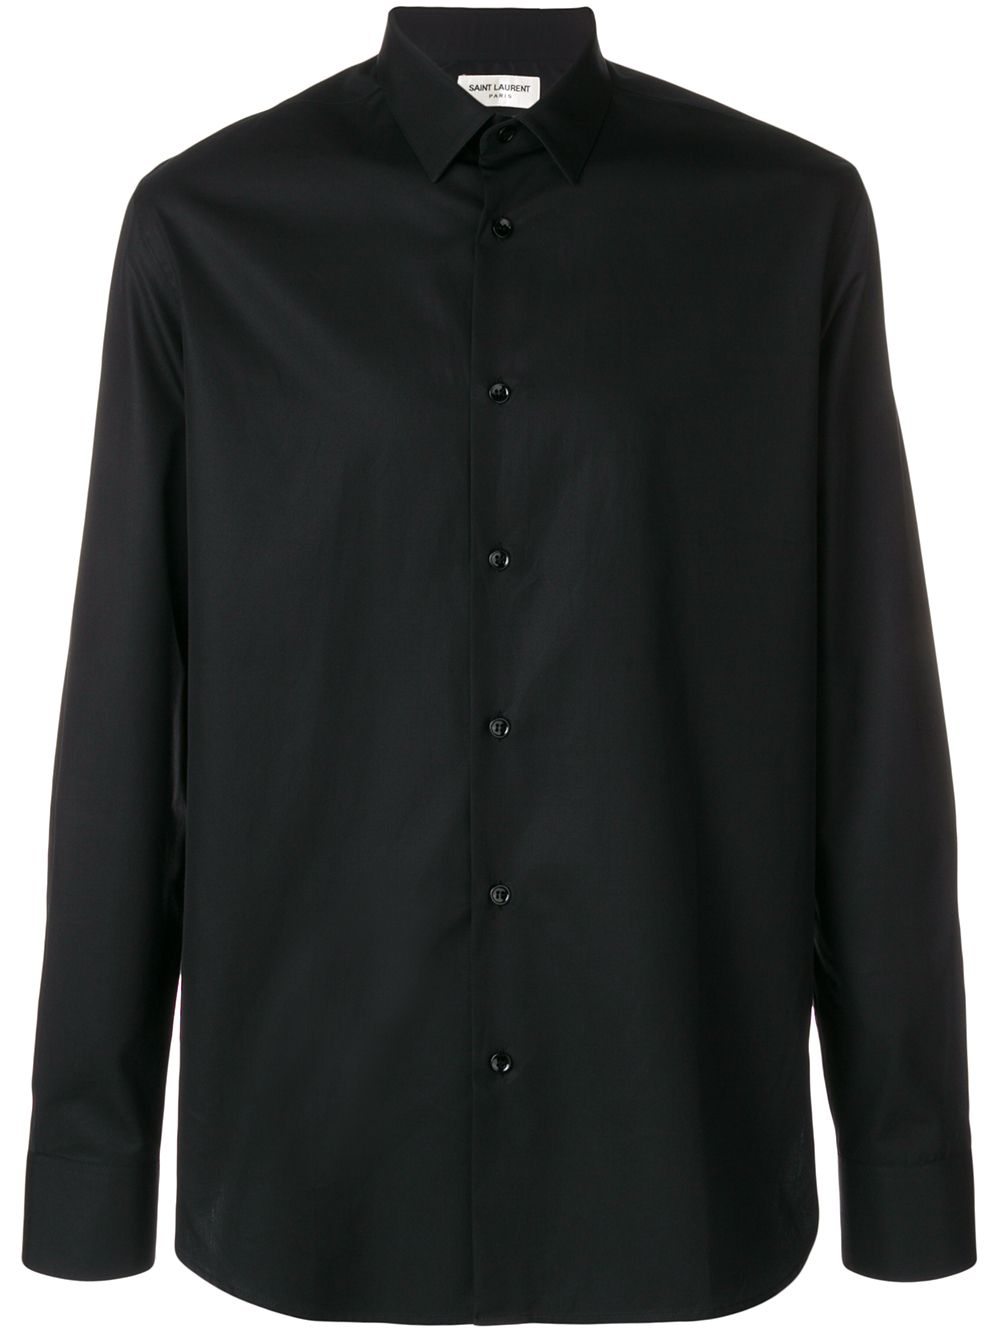 Saint Laurent slim fit classic shirt - Black von Saint Laurent